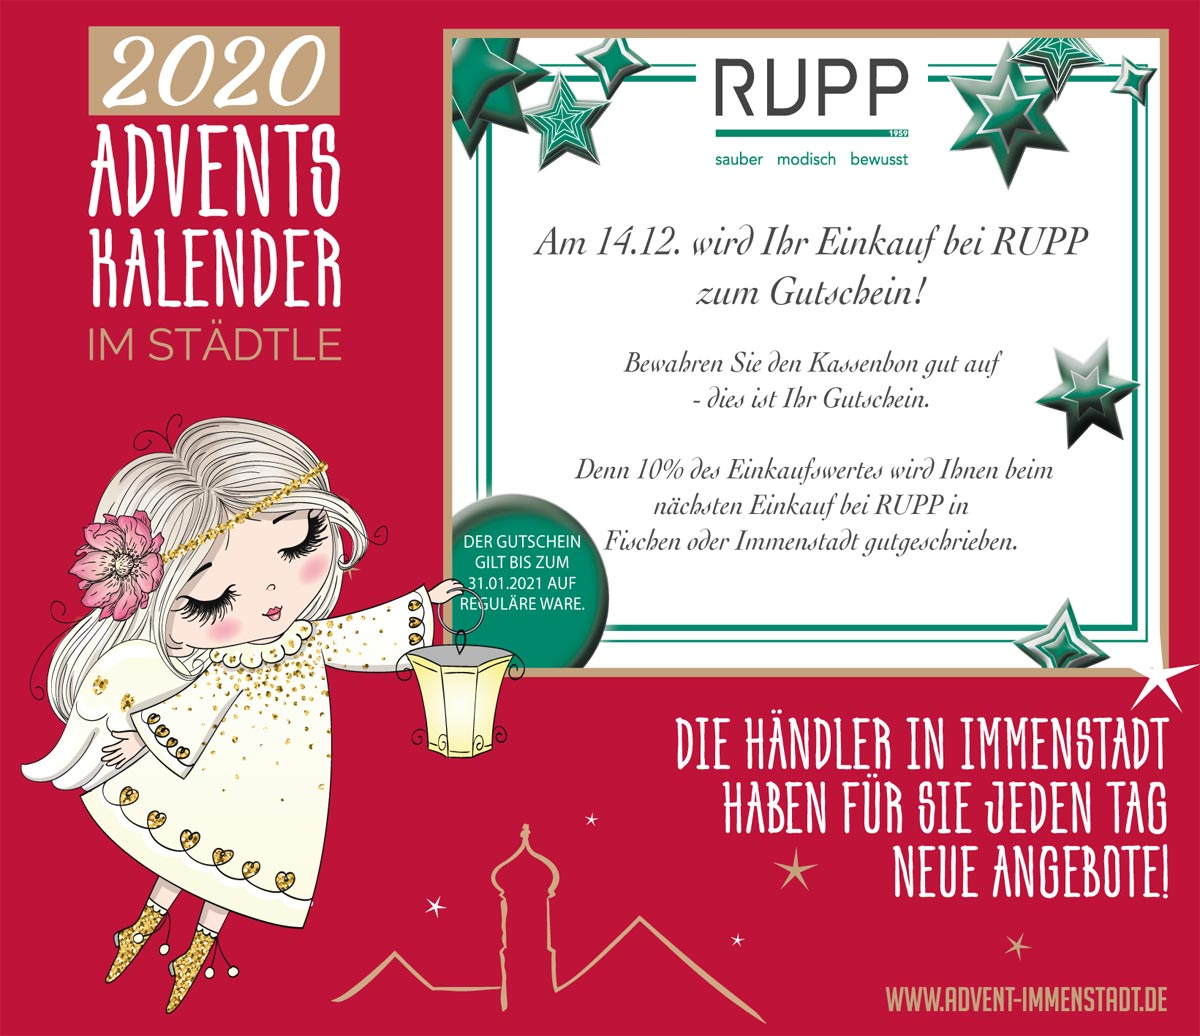 Adventskalender Rupp am 14.12.2020